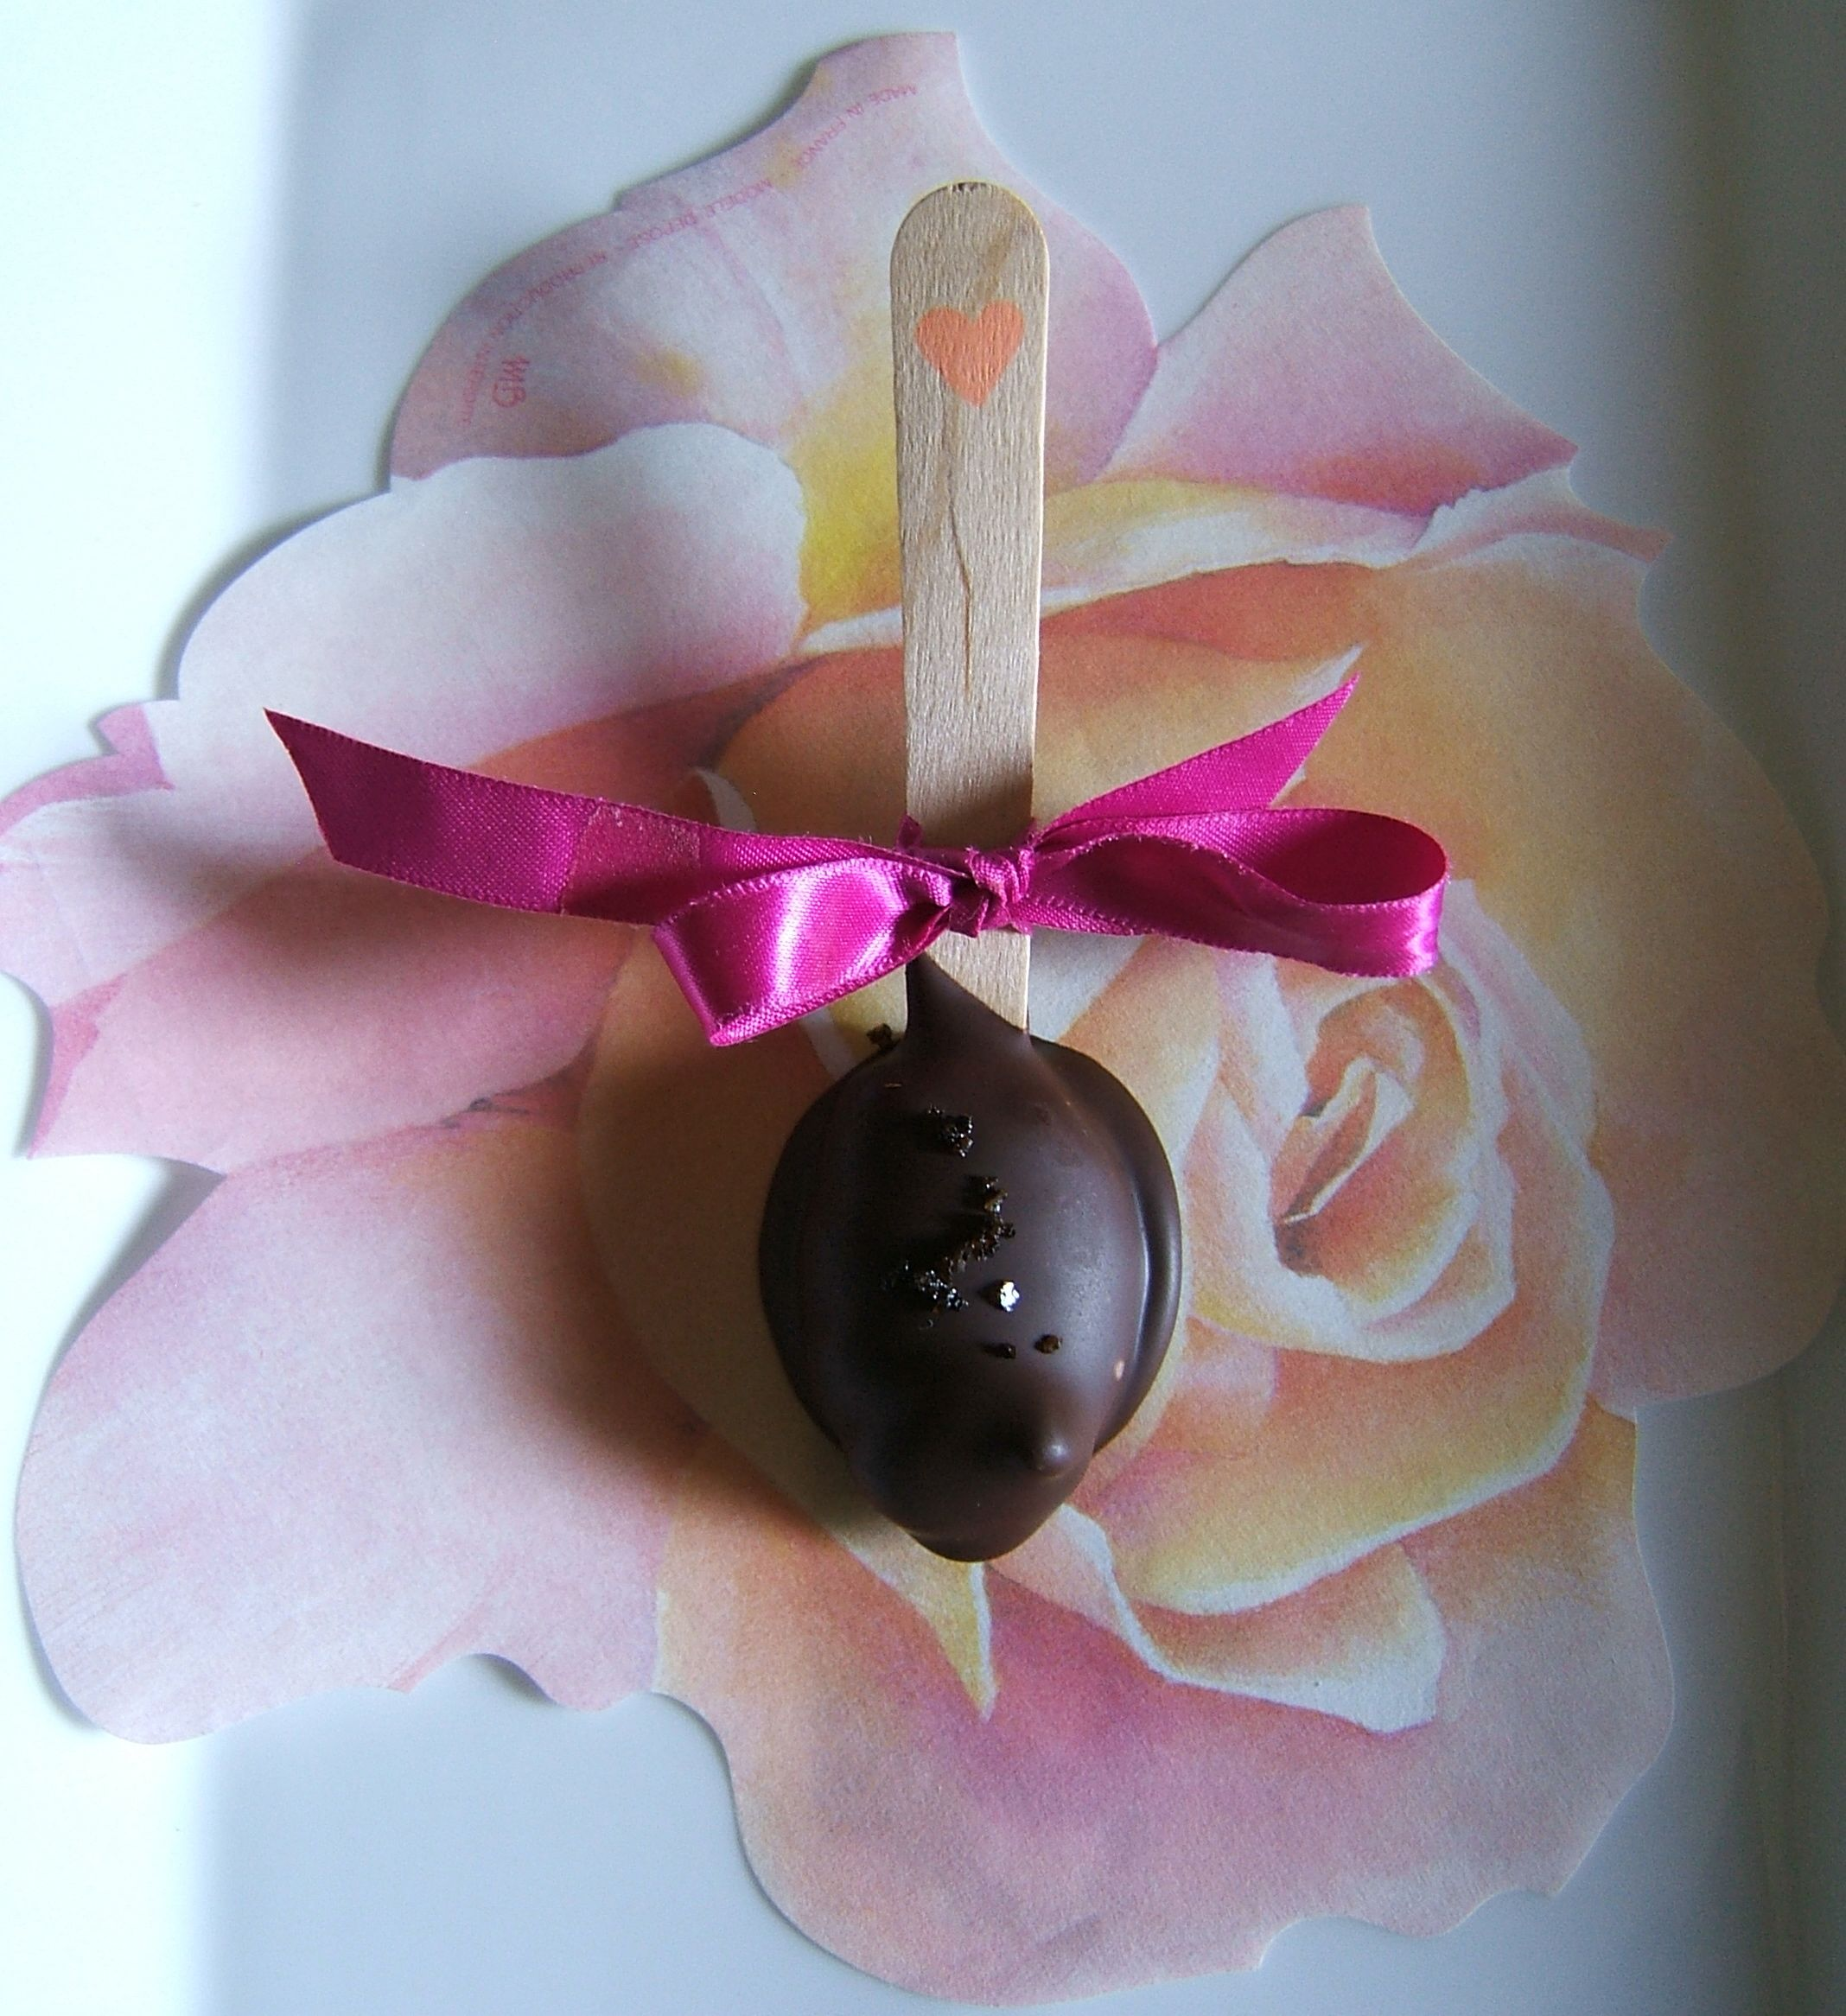 Chocolate Truffle Spoons with Cocoa Nibs